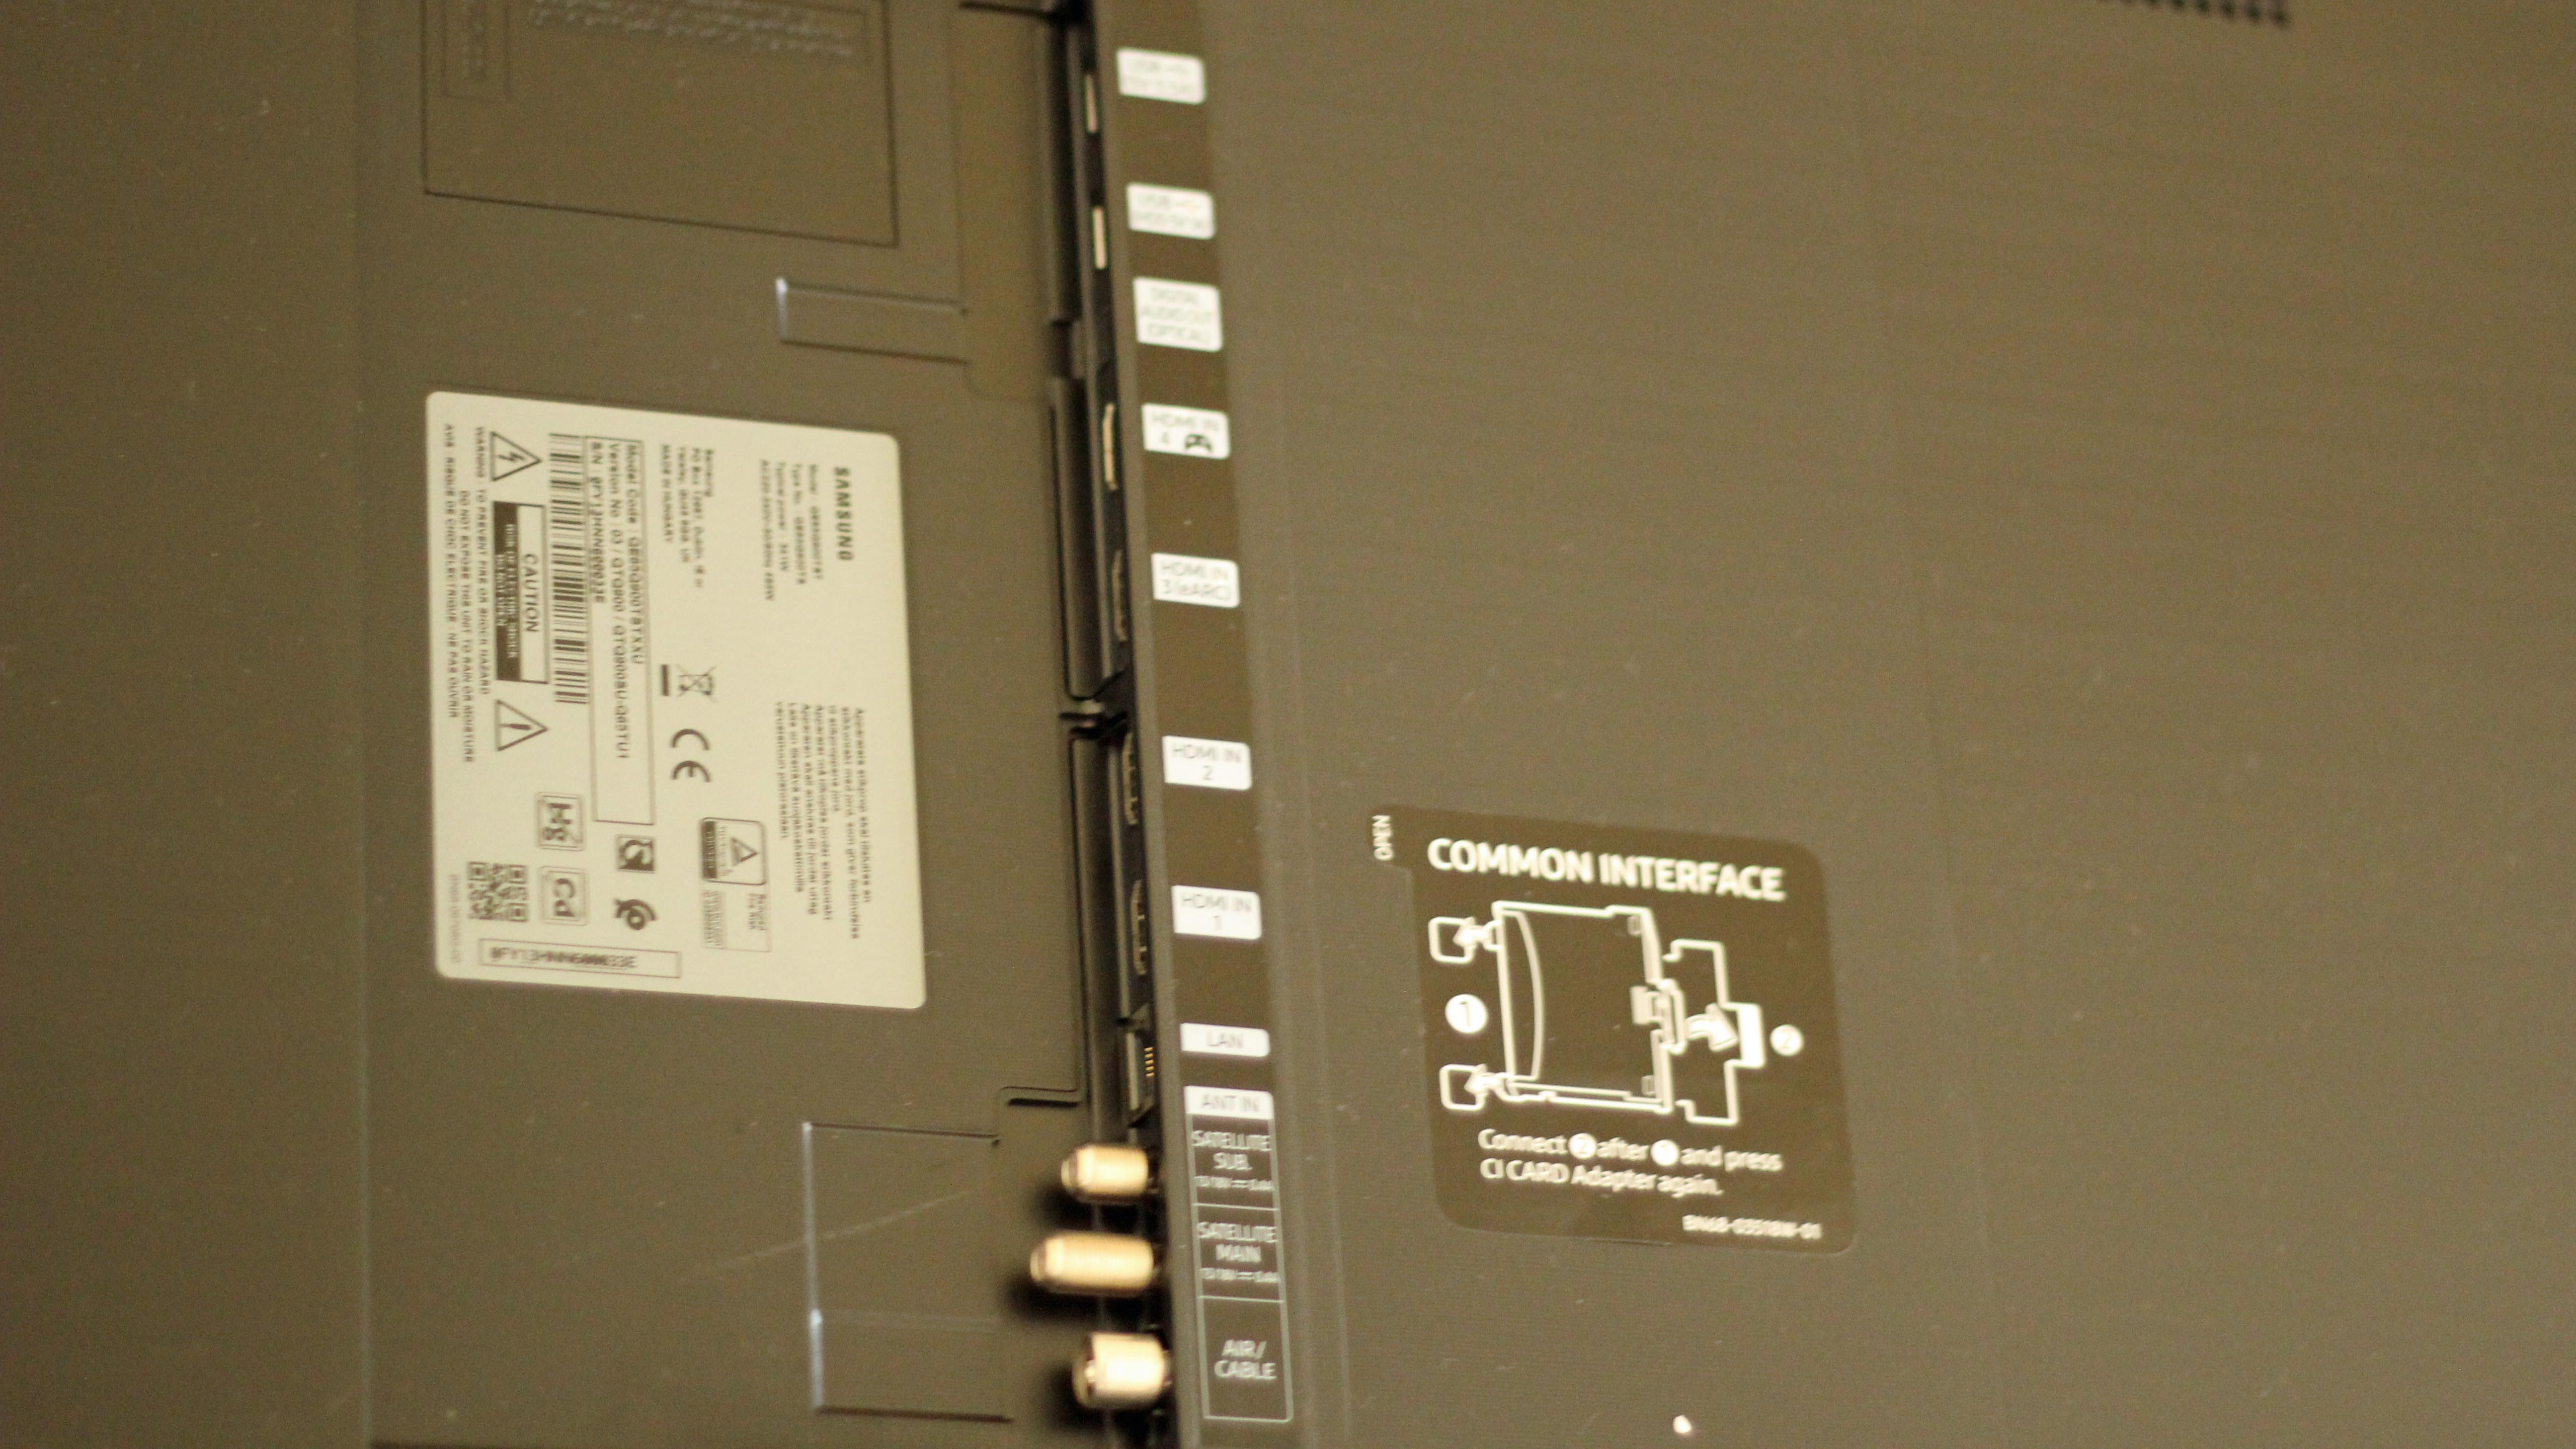 Showing the ports and connectivity options on the Q900TS